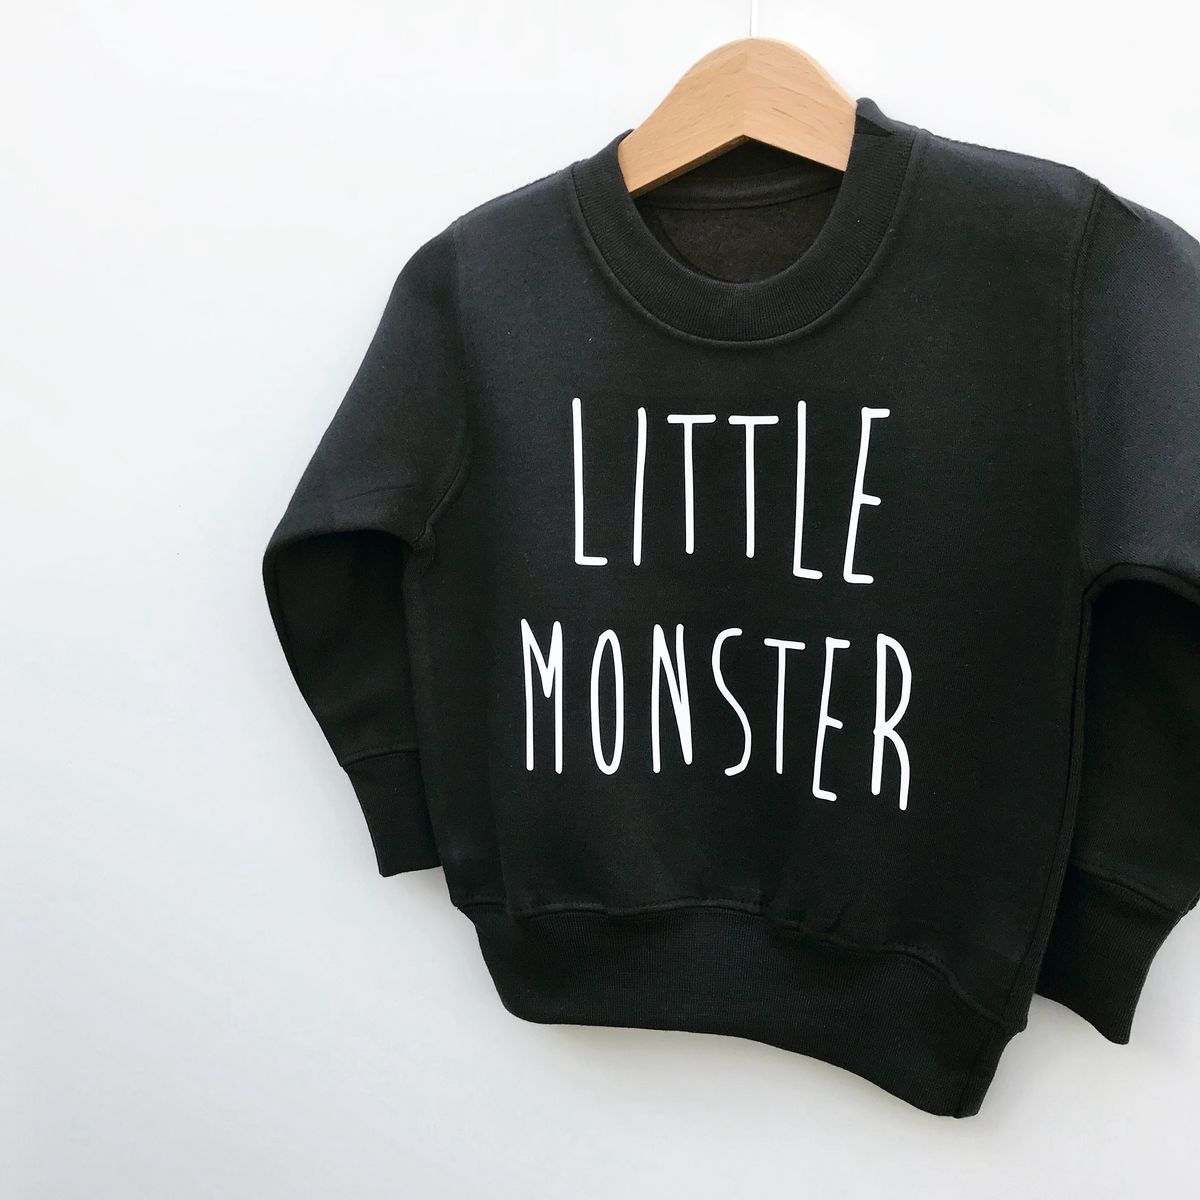 Little Monster Sweatshirt - product images  of